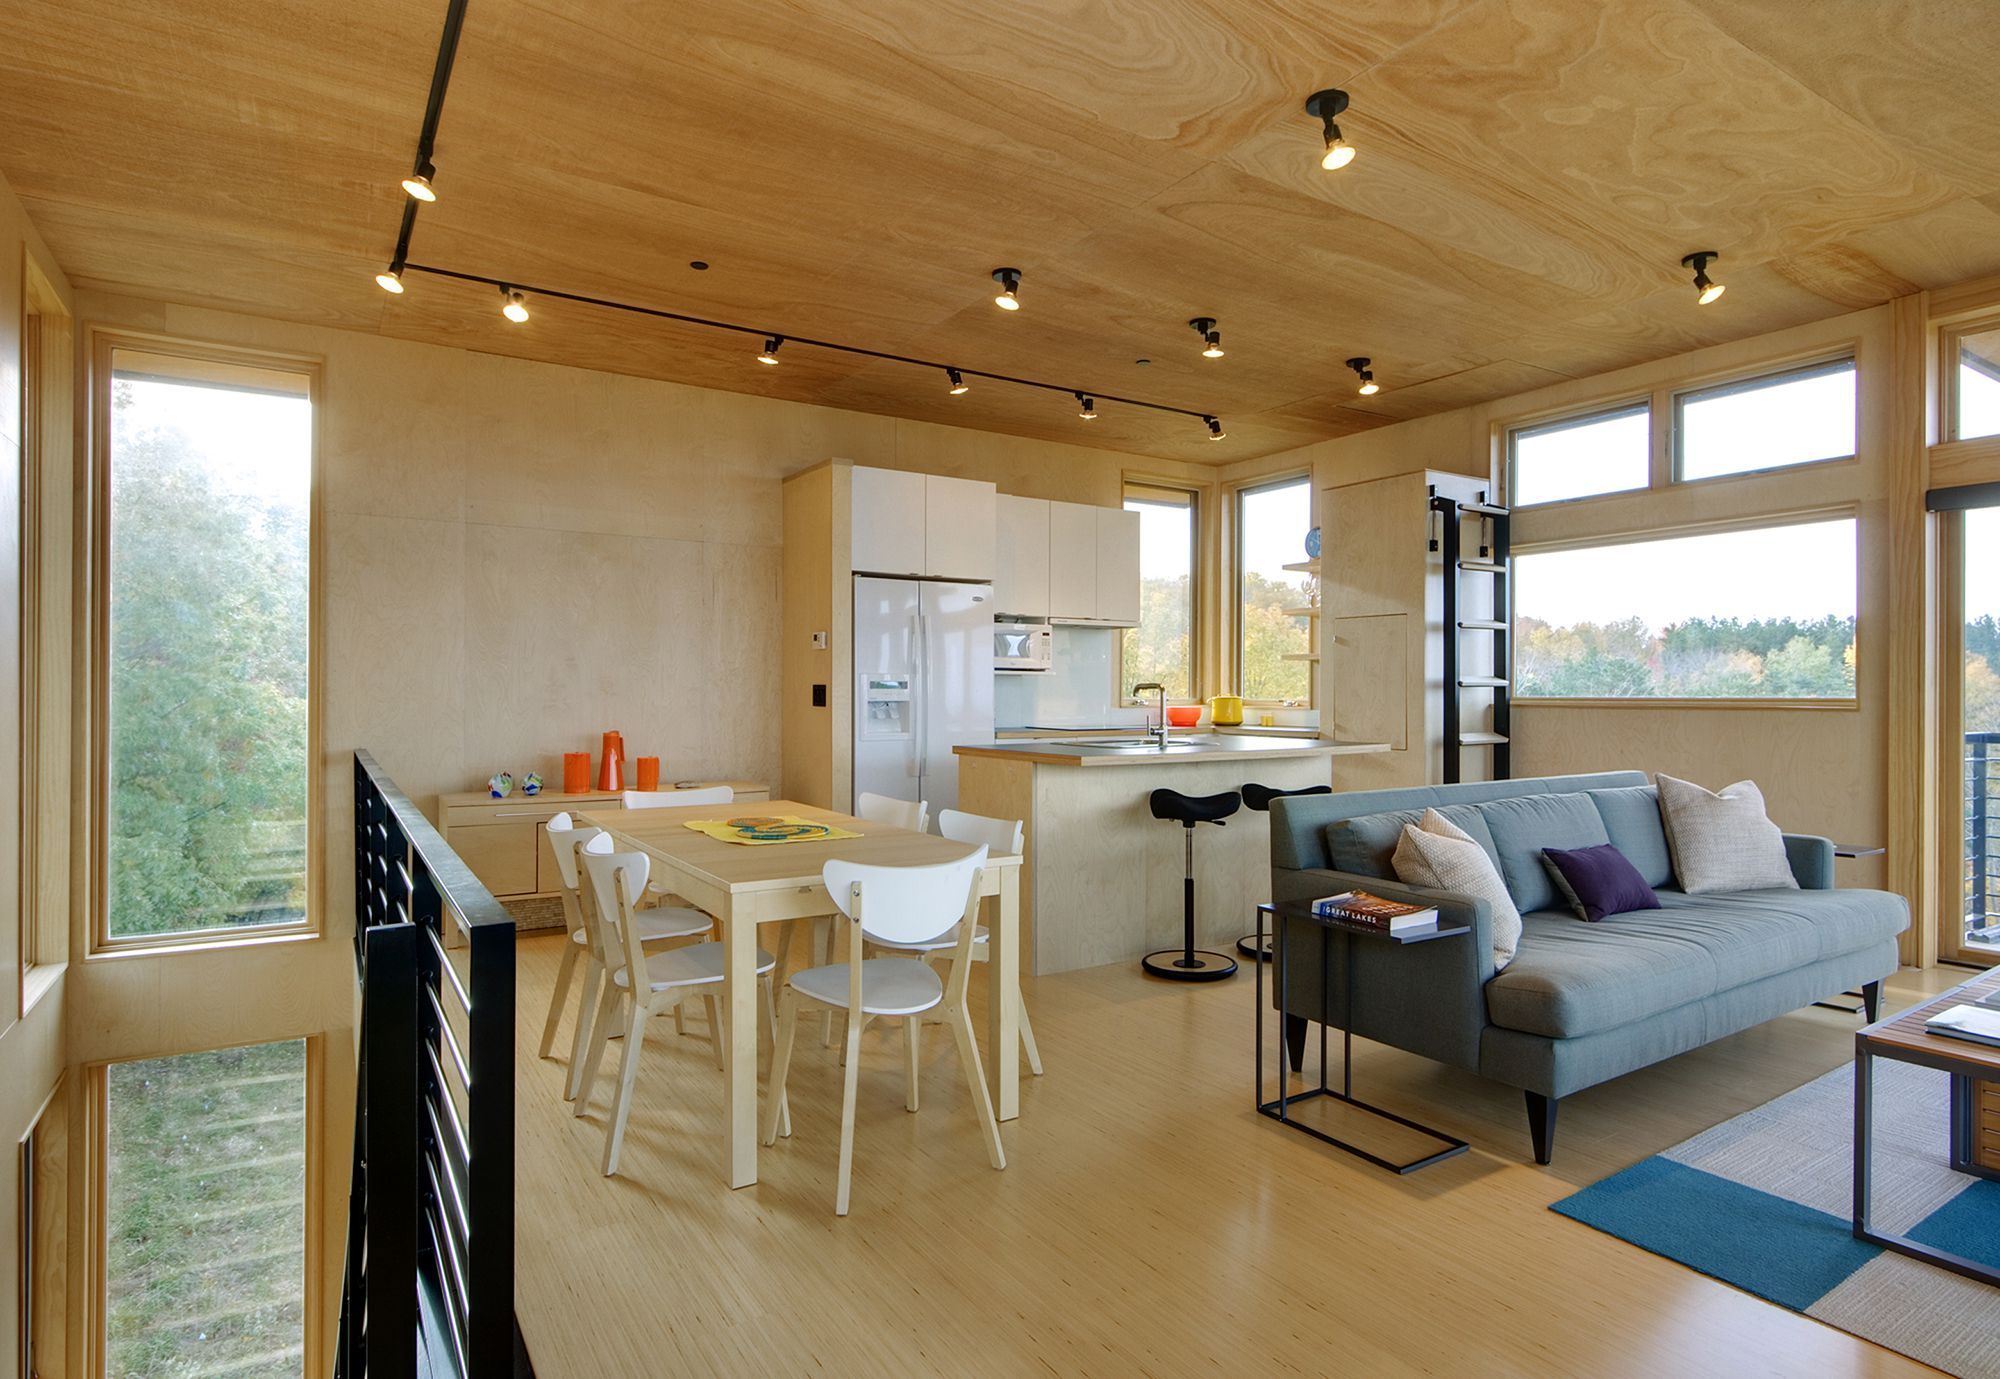 Glen Lake Tower By Balance Associates Caandesign